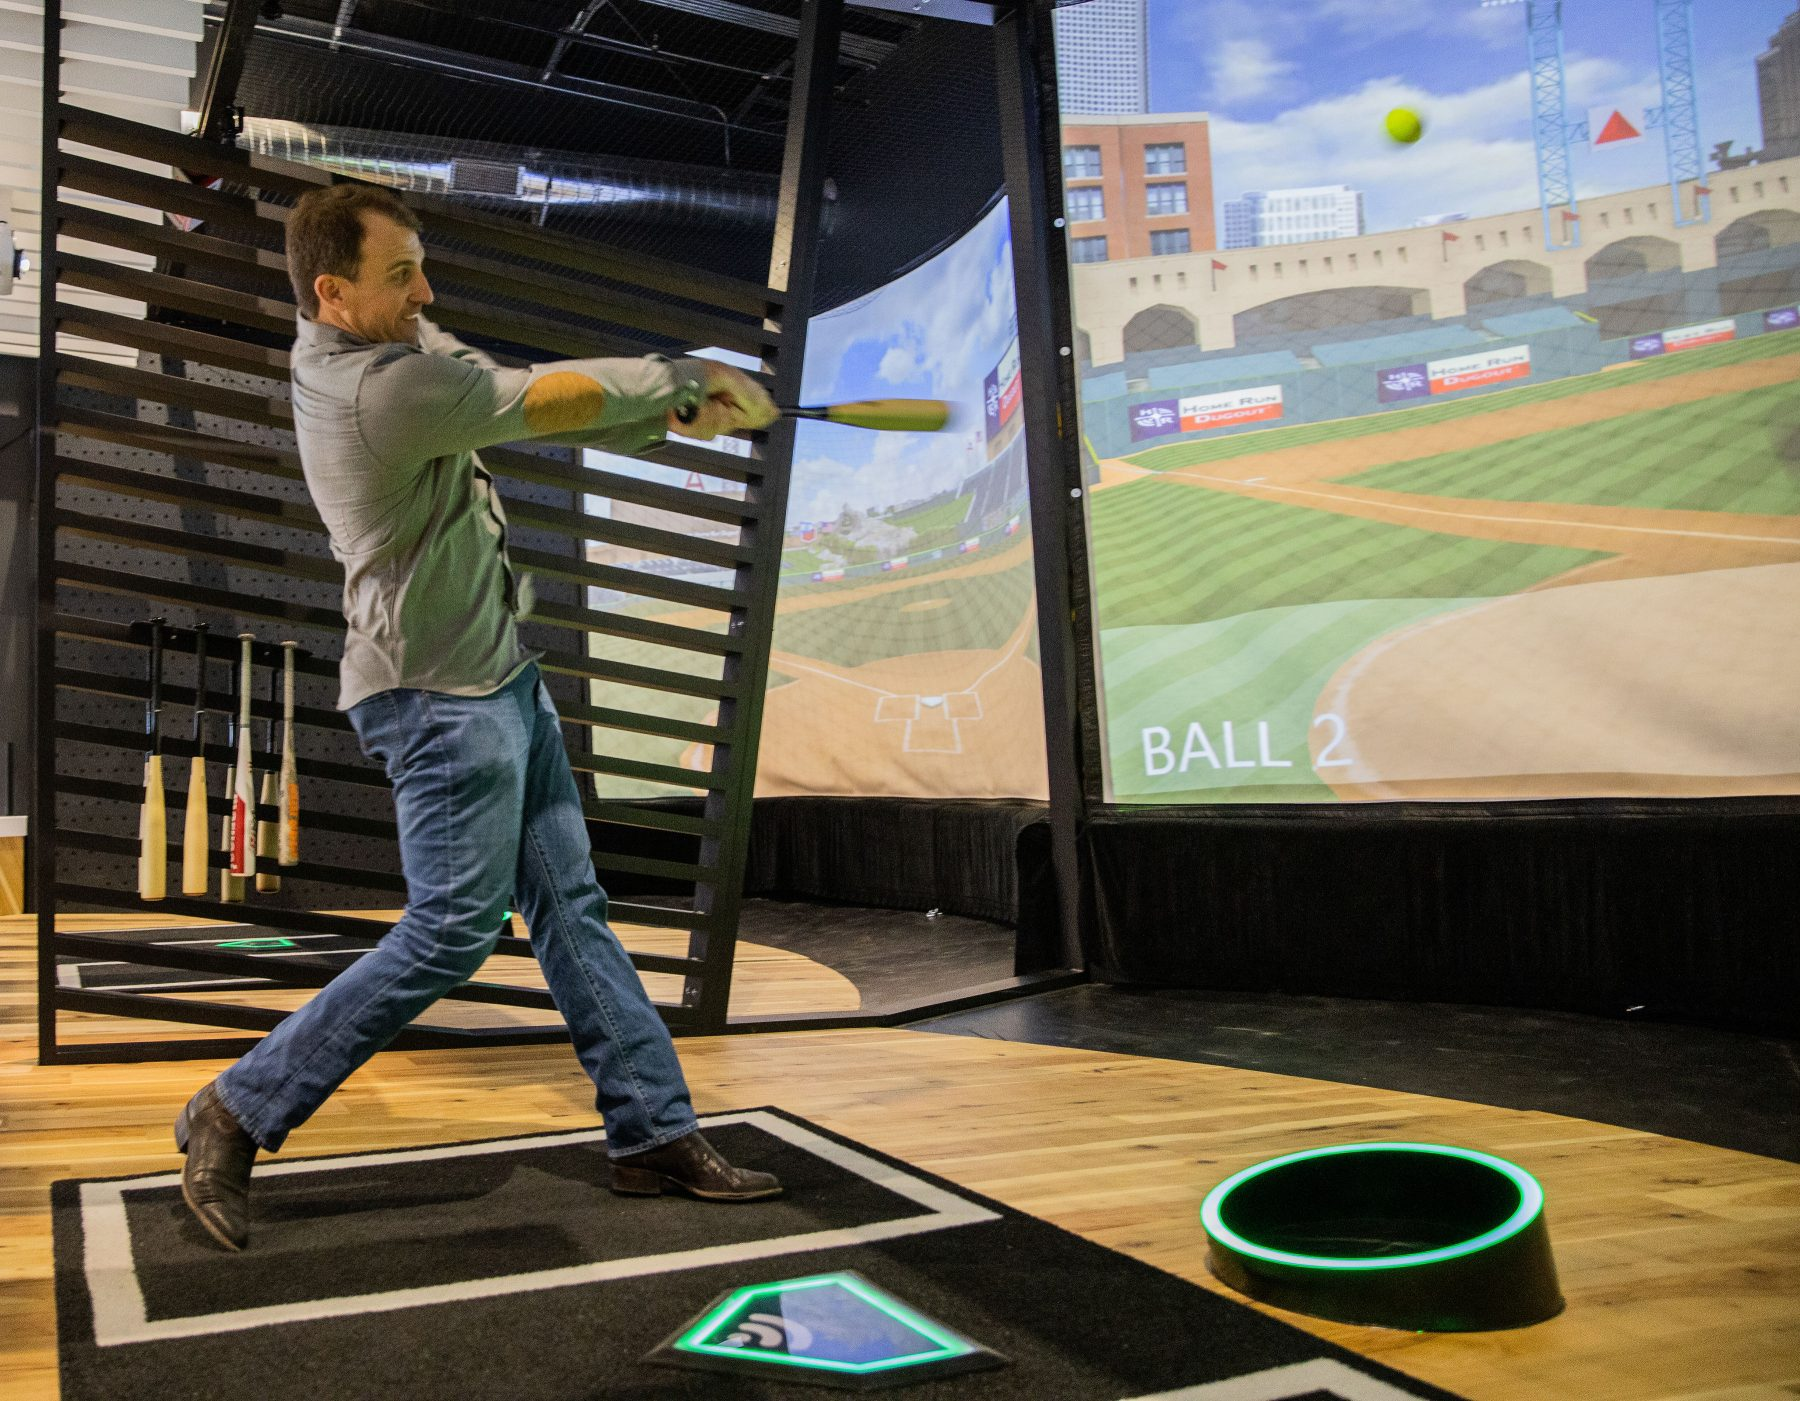 New Virtual Batting Cages Open in Round Rock- Texas Highways